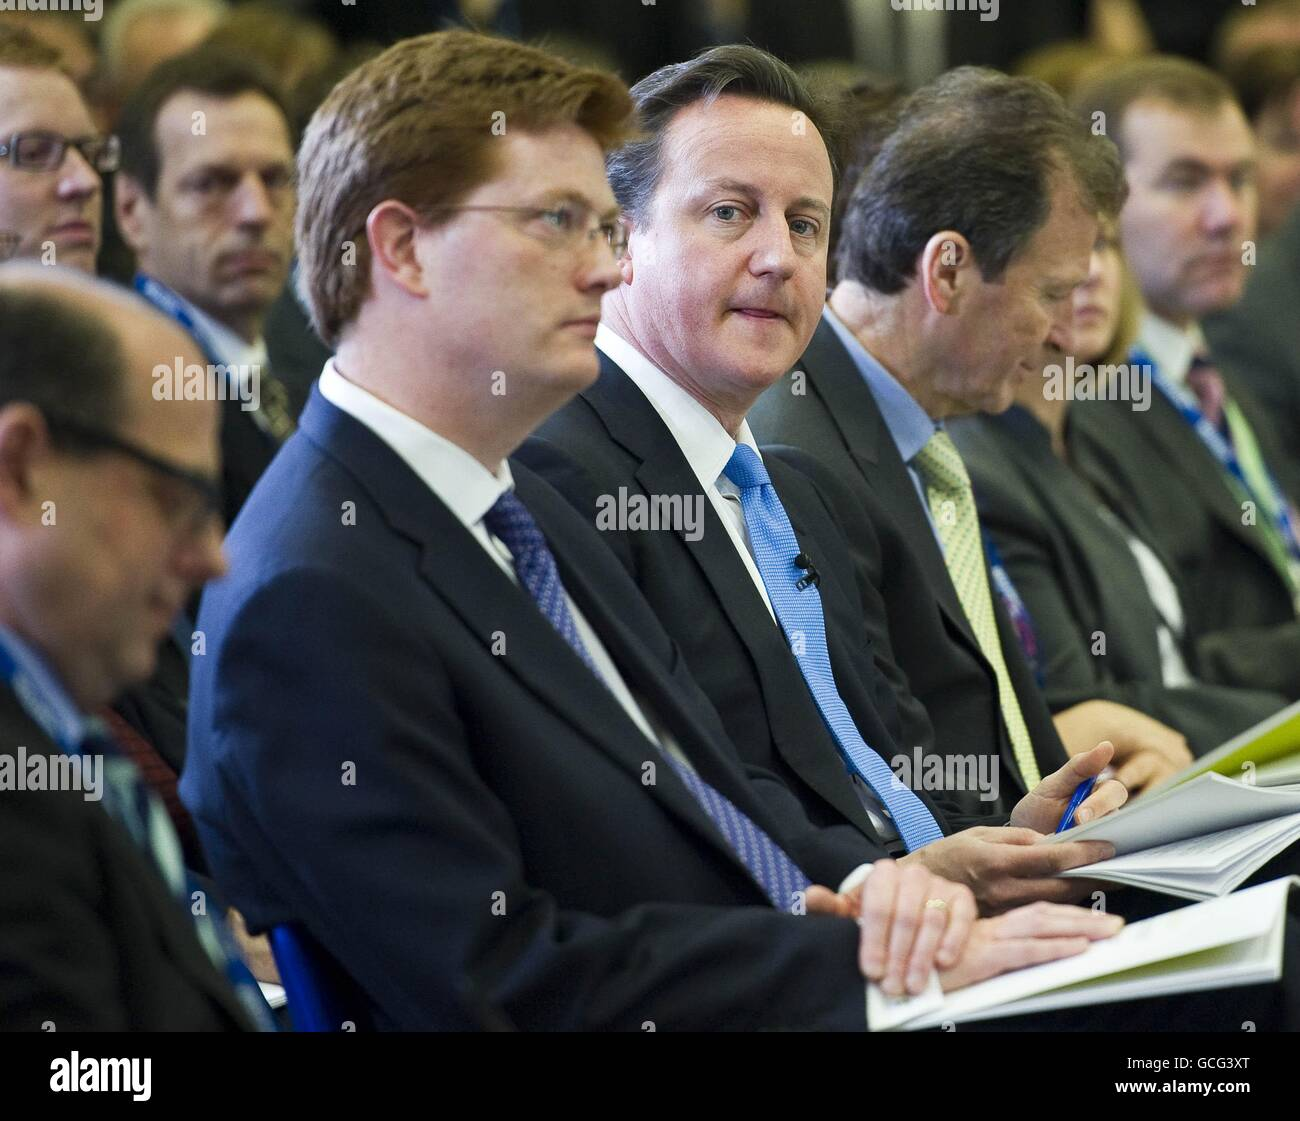 Launch of Coalition Agreement Stock Photo